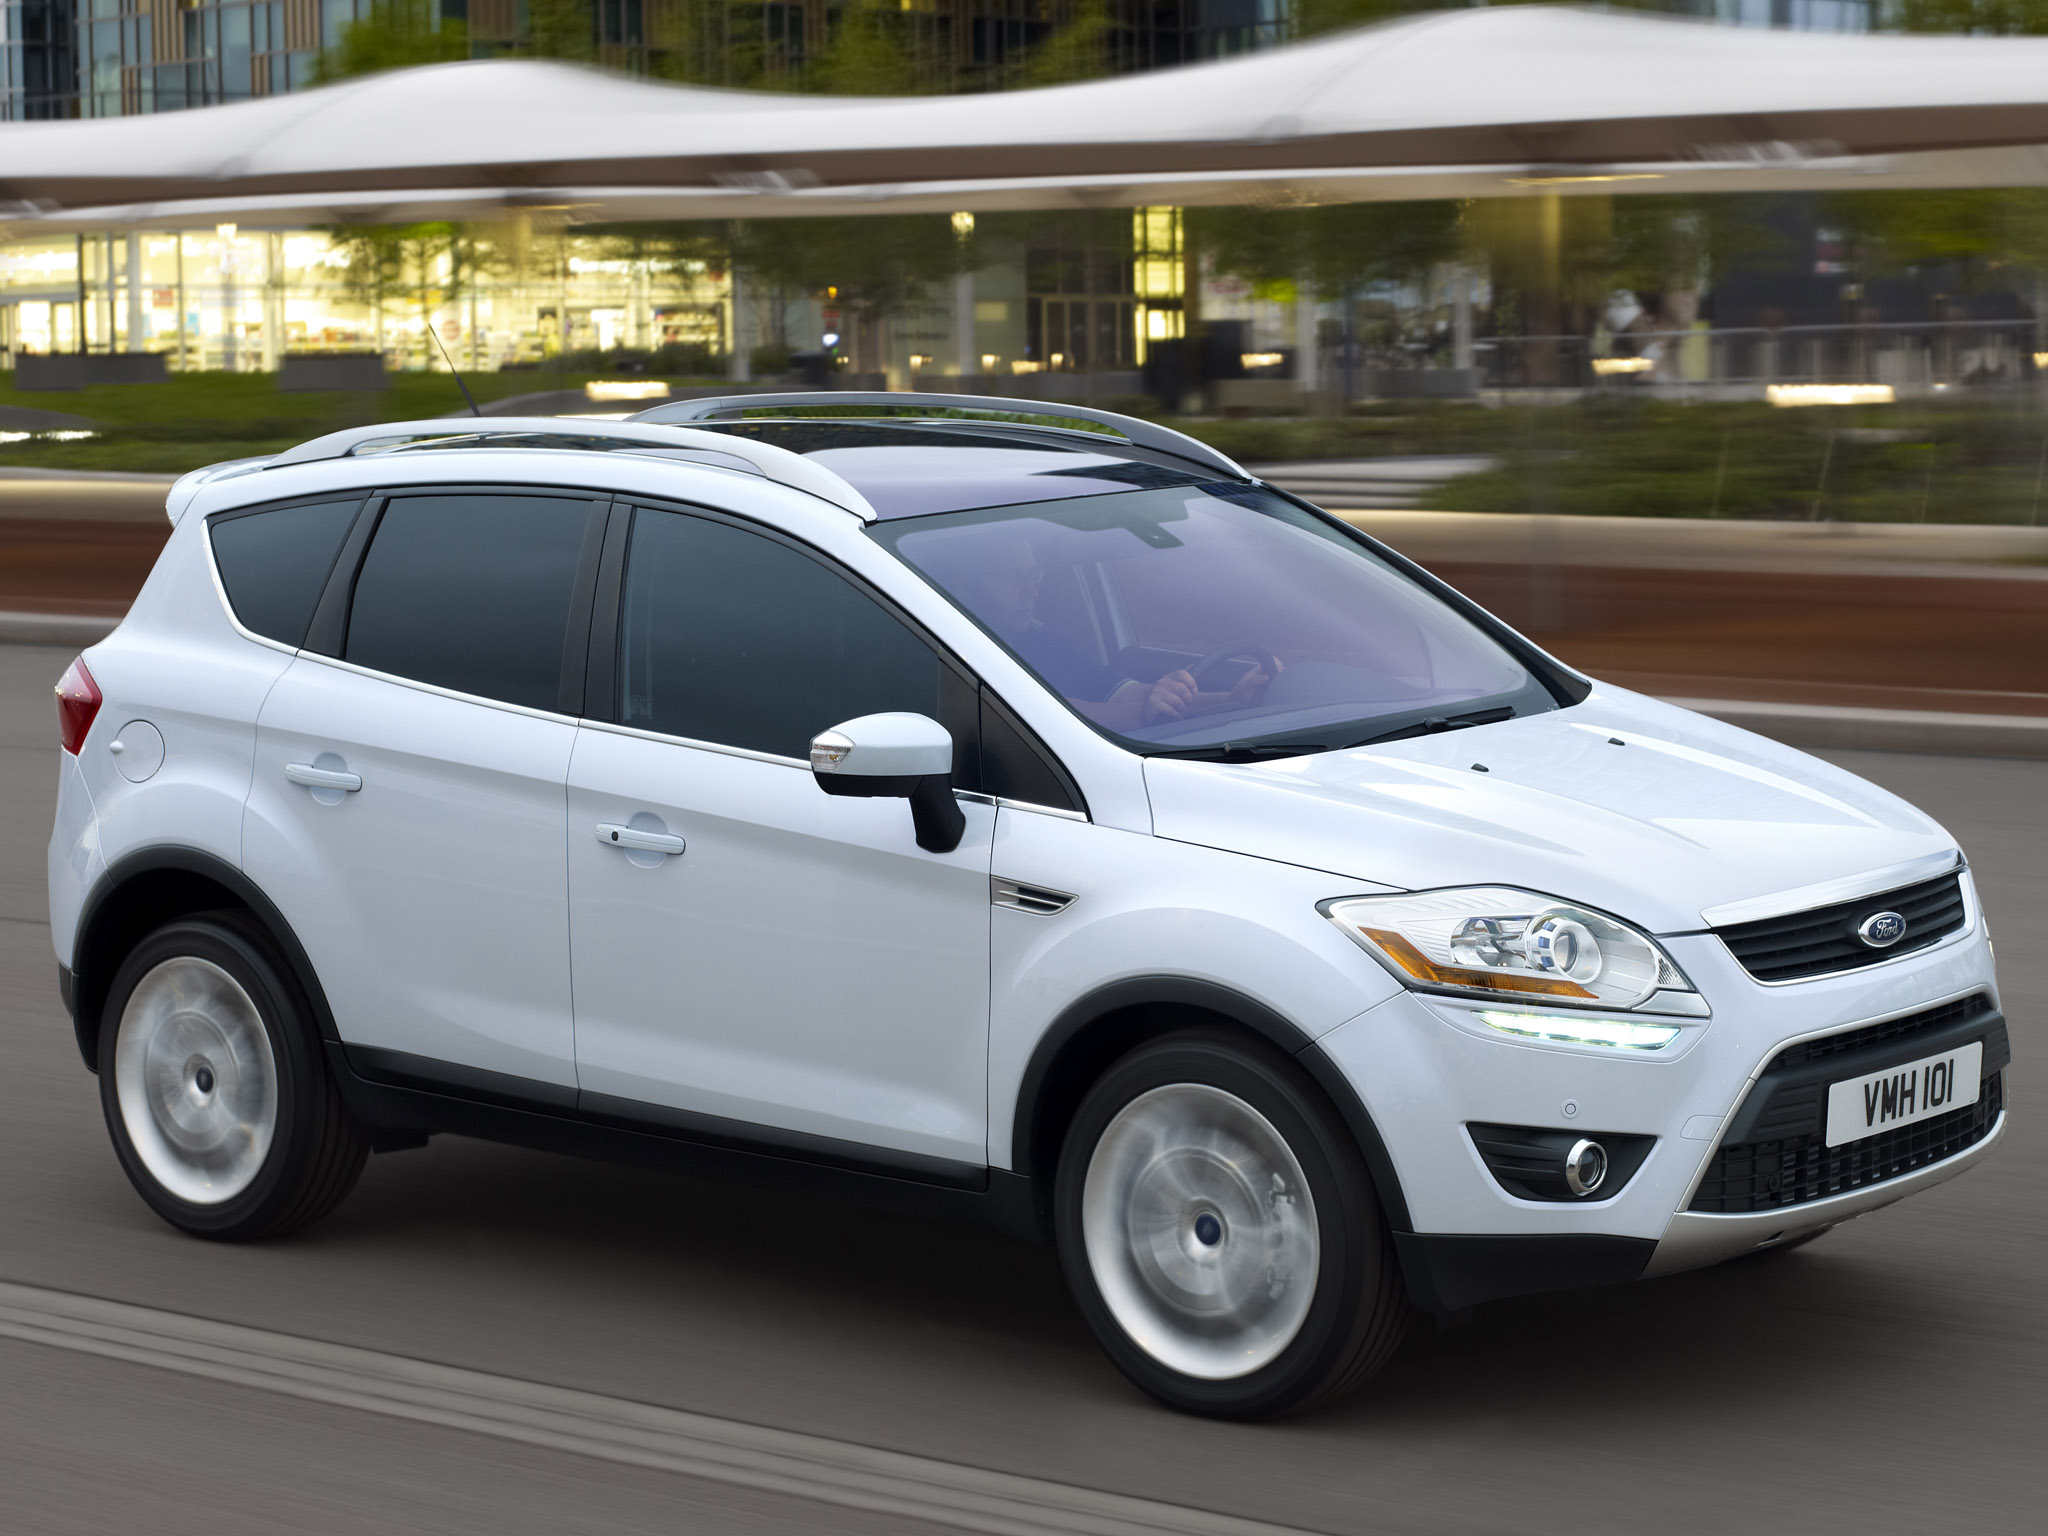 ford kuga titanium s 2011 ford kuga titanium s 2011 photo 04 car in pictures car photo gallery. Black Bedroom Furniture Sets. Home Design Ideas